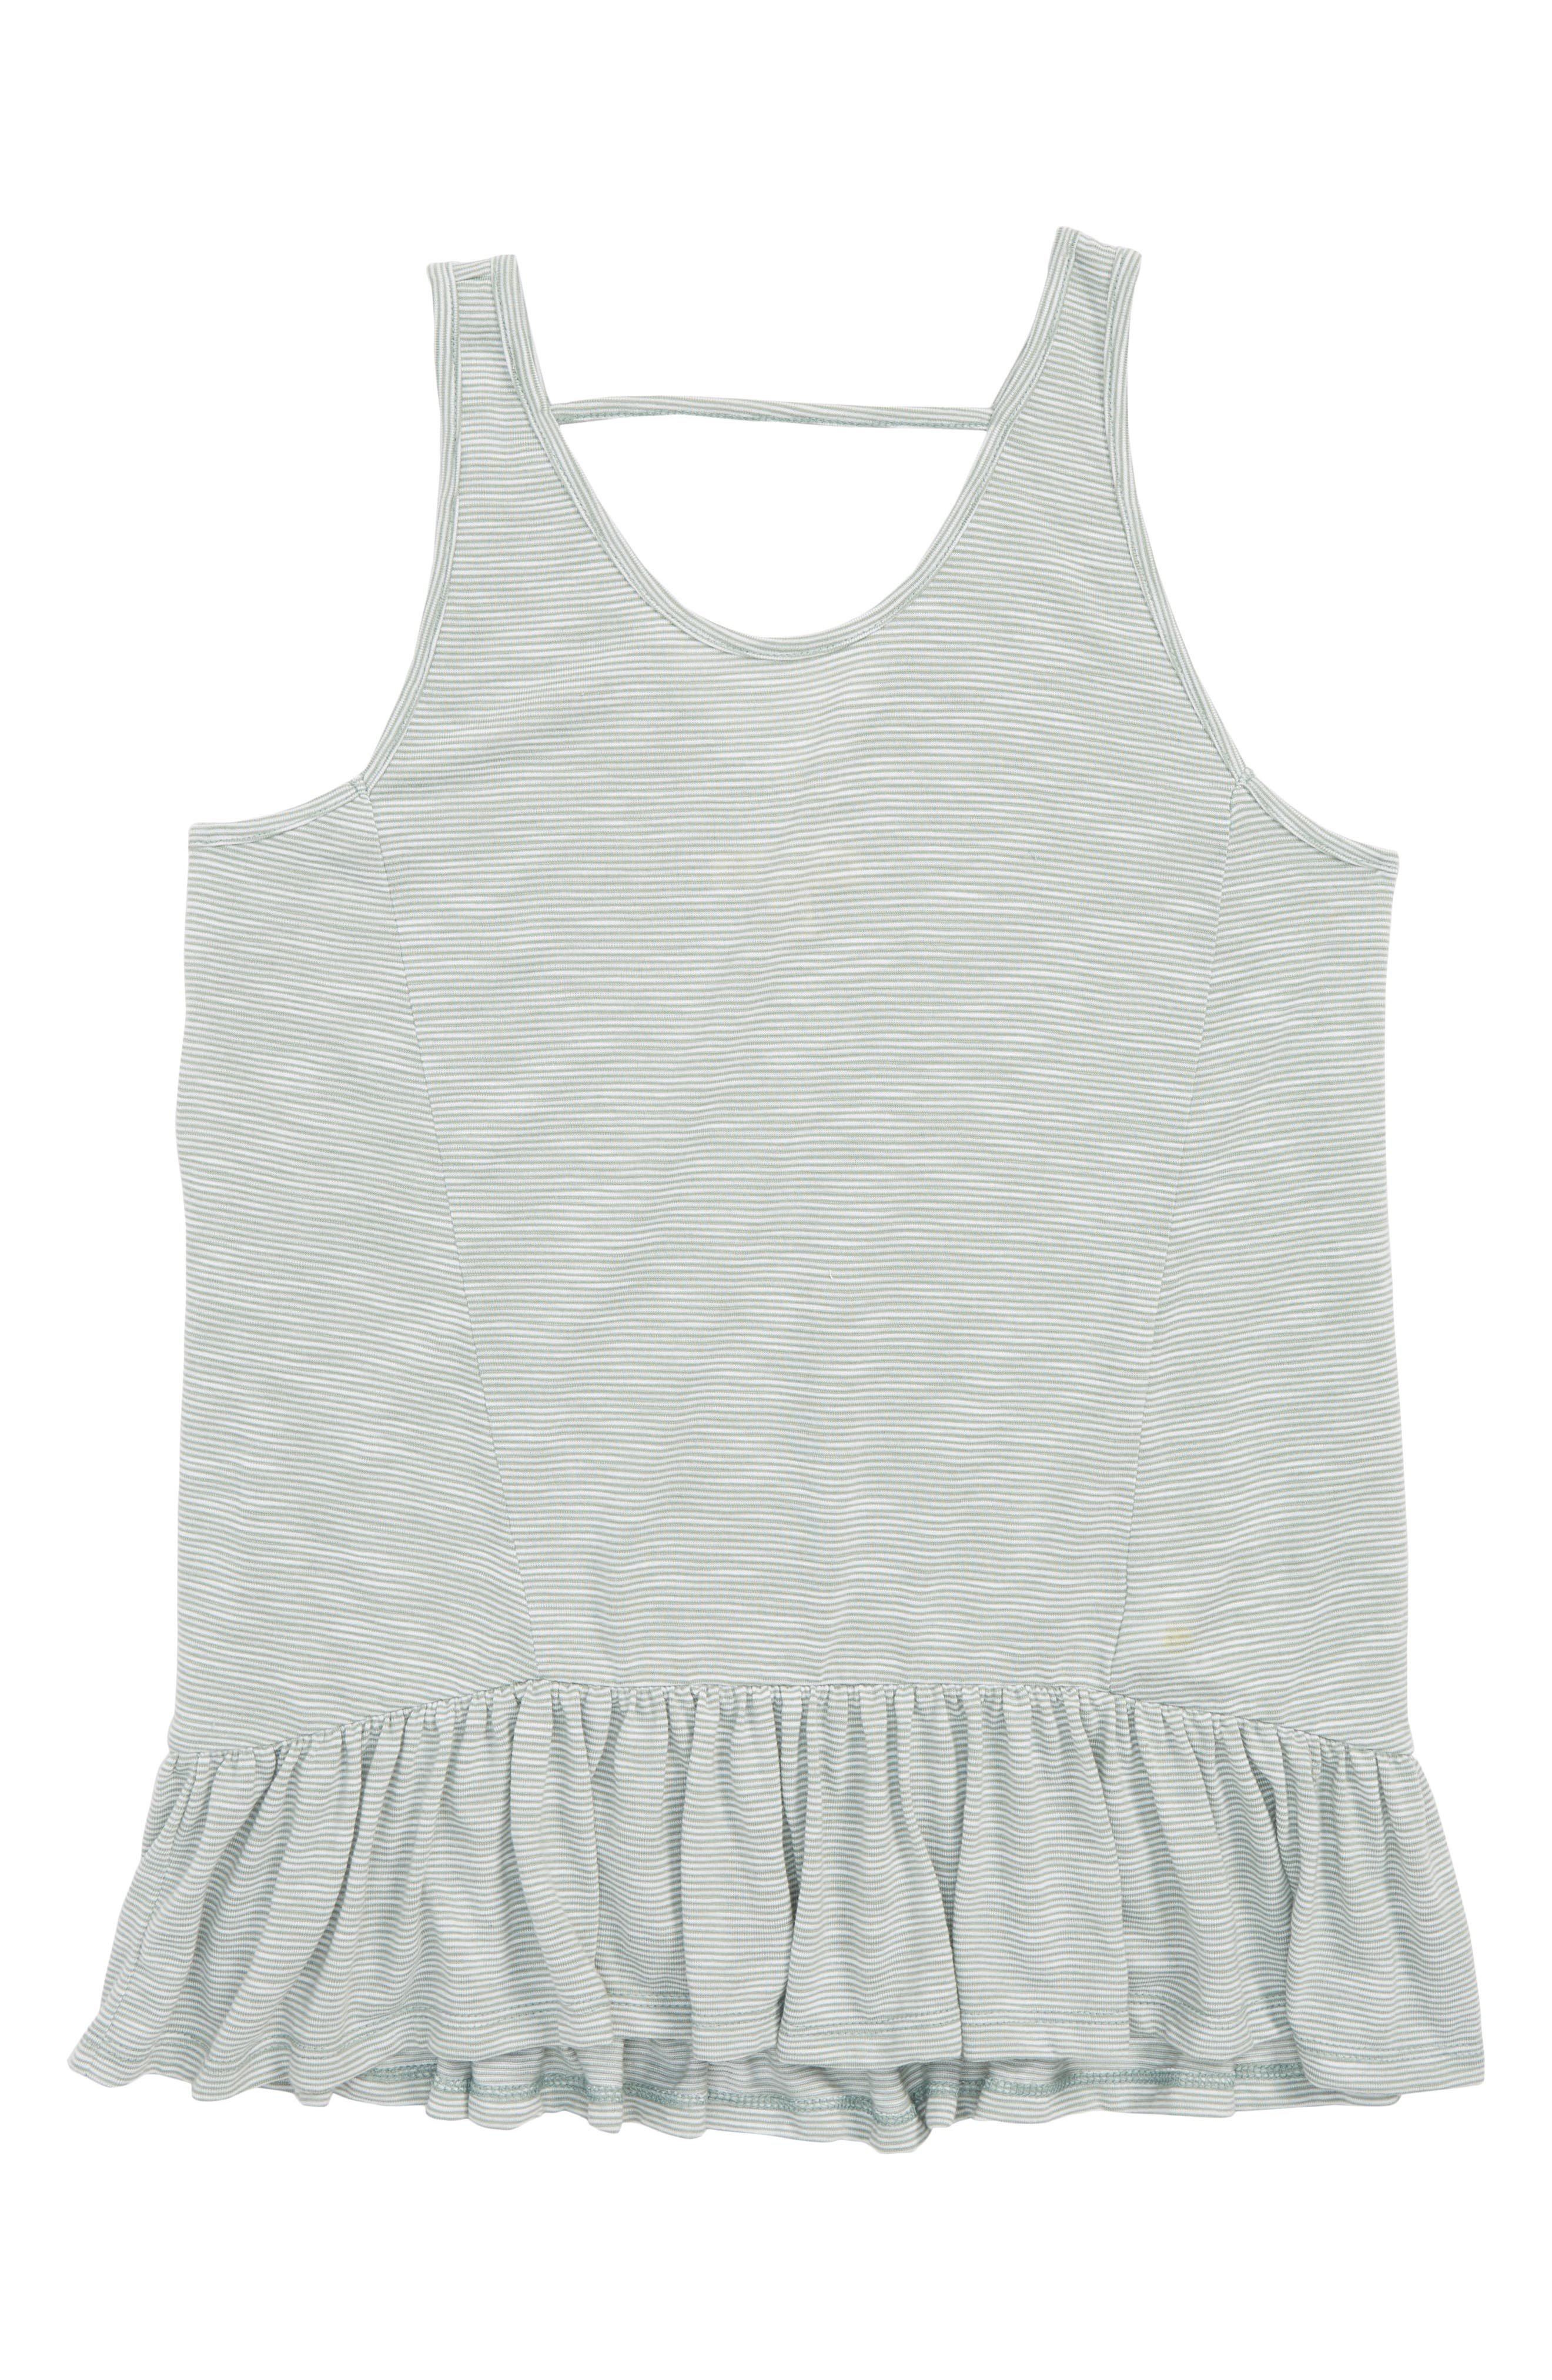 TUCKER + TATE Stripe Peplum Tank, Main, color, 310